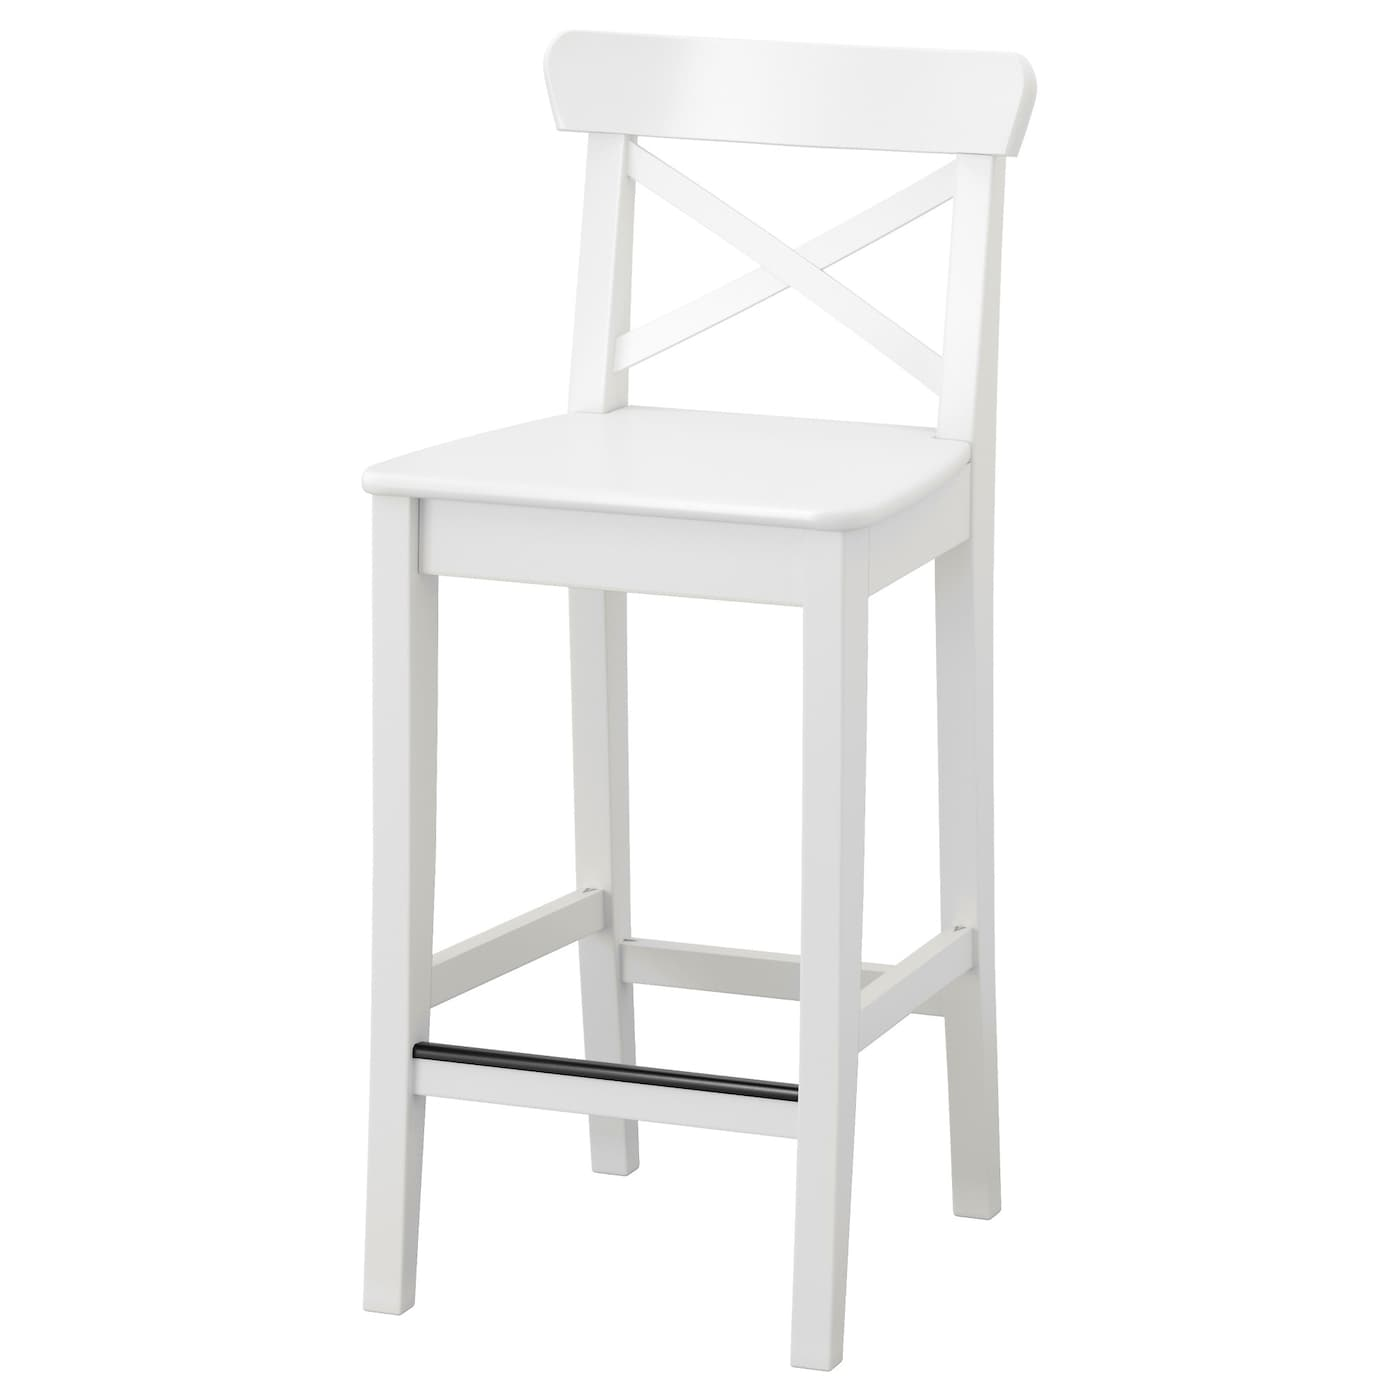 Ingolf Bar Stool With Backrest White 63 Cm Ikea